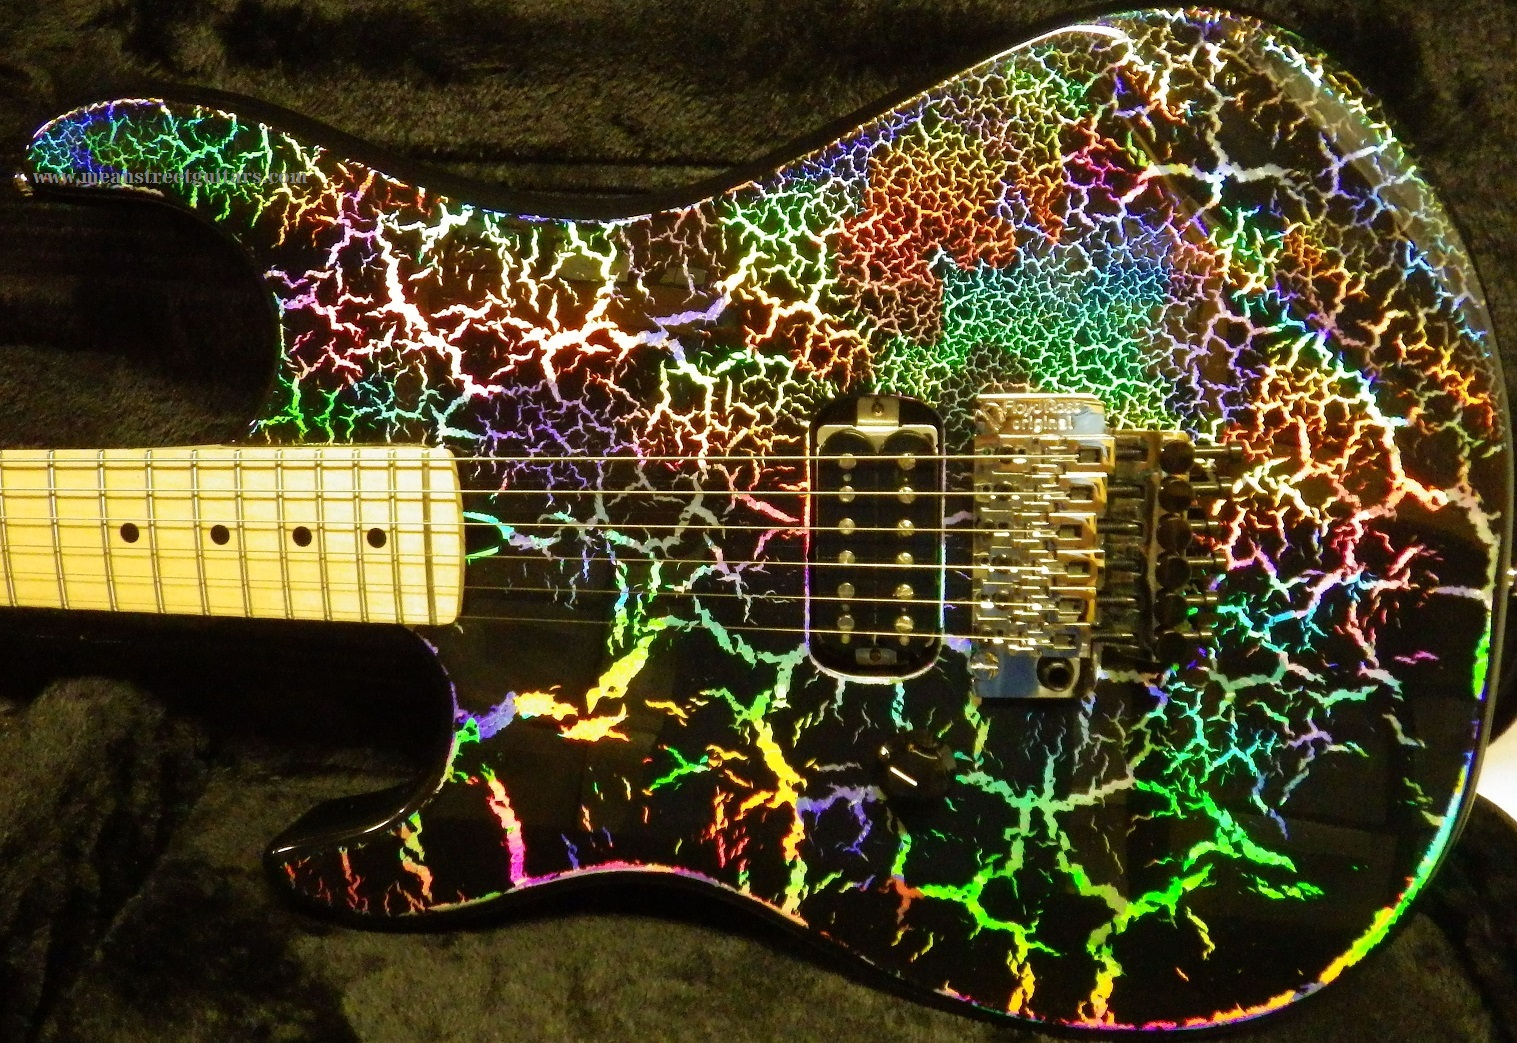 Mean Street Unchained Tour Model Holocrackle 719 Ryan T pic 11.jpg